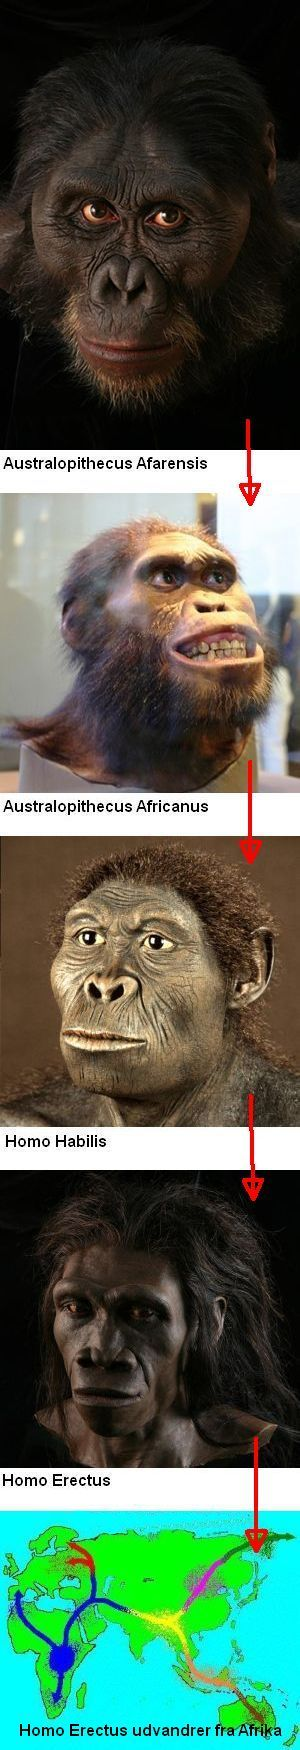 The family Homo  evolved in Africa